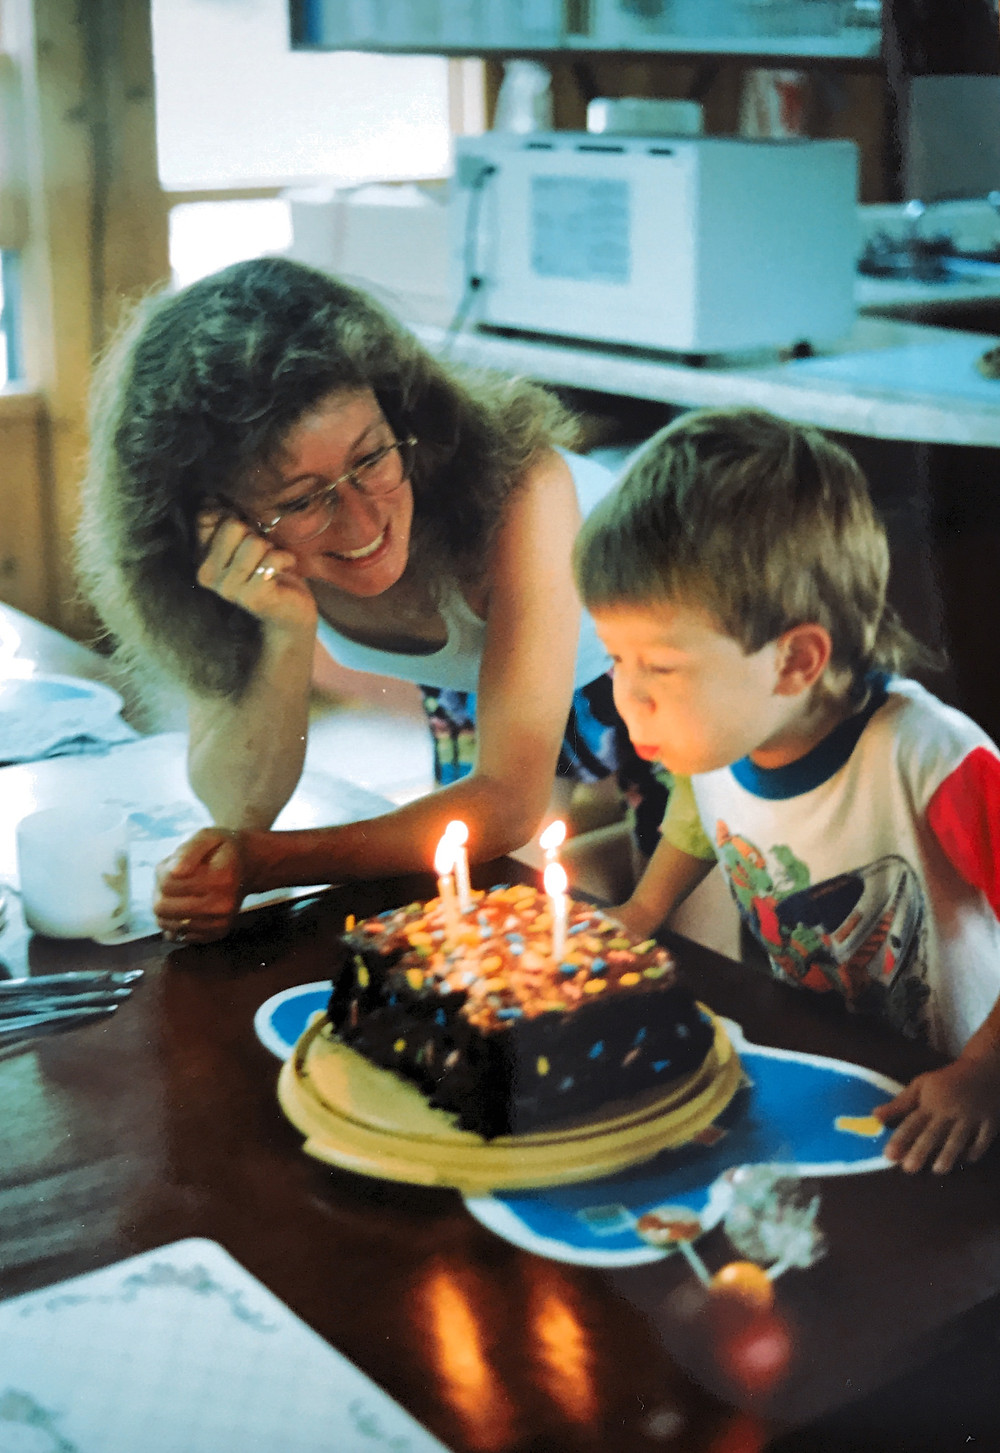 Mom with young boy blowing out candles on a cake